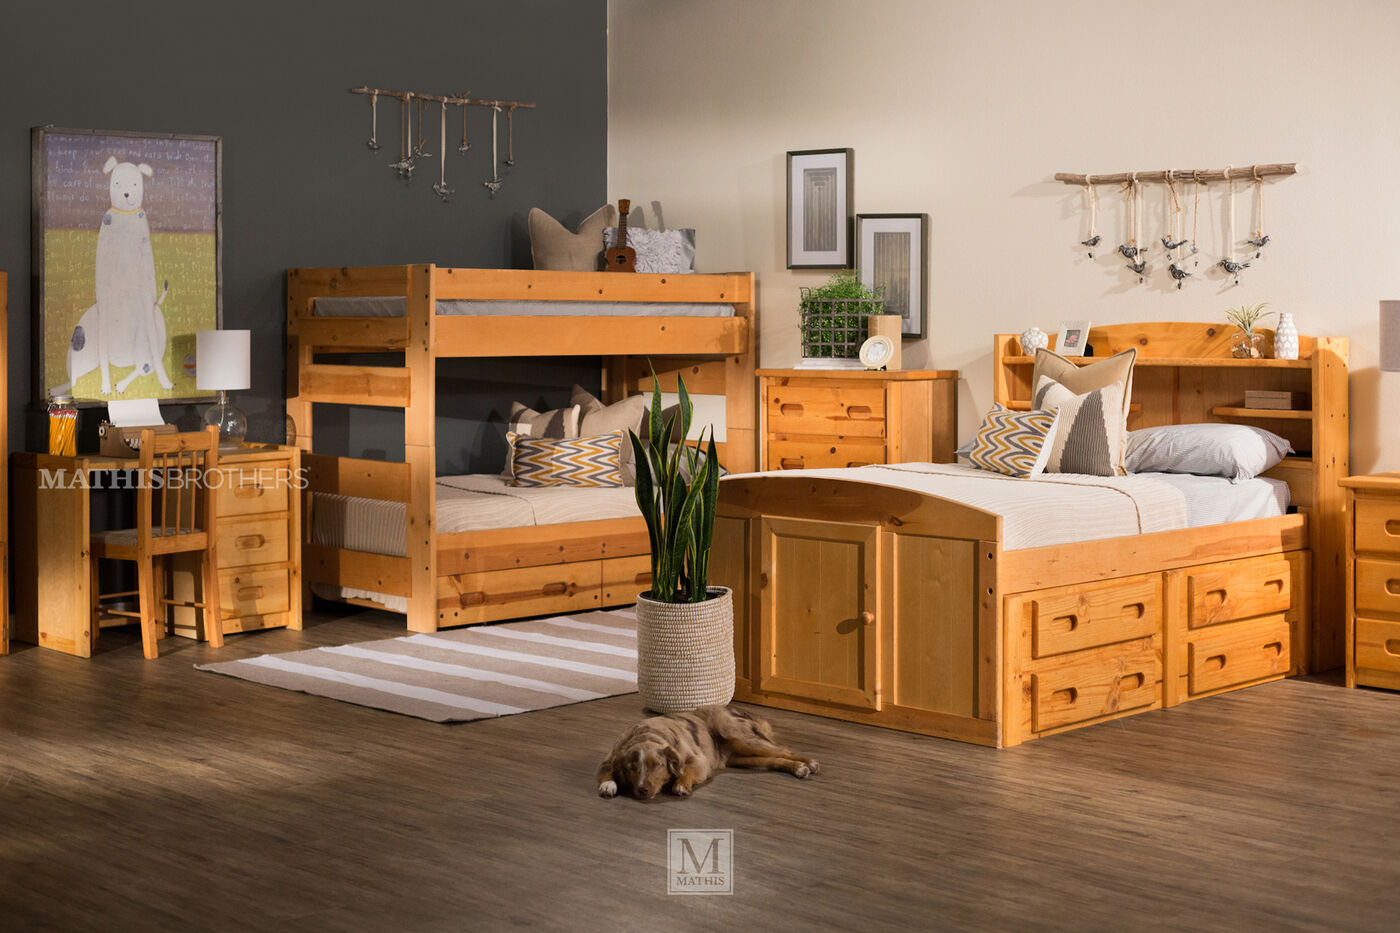 Trendwood Twin Bunk Bed Mathis Brothers Furniture